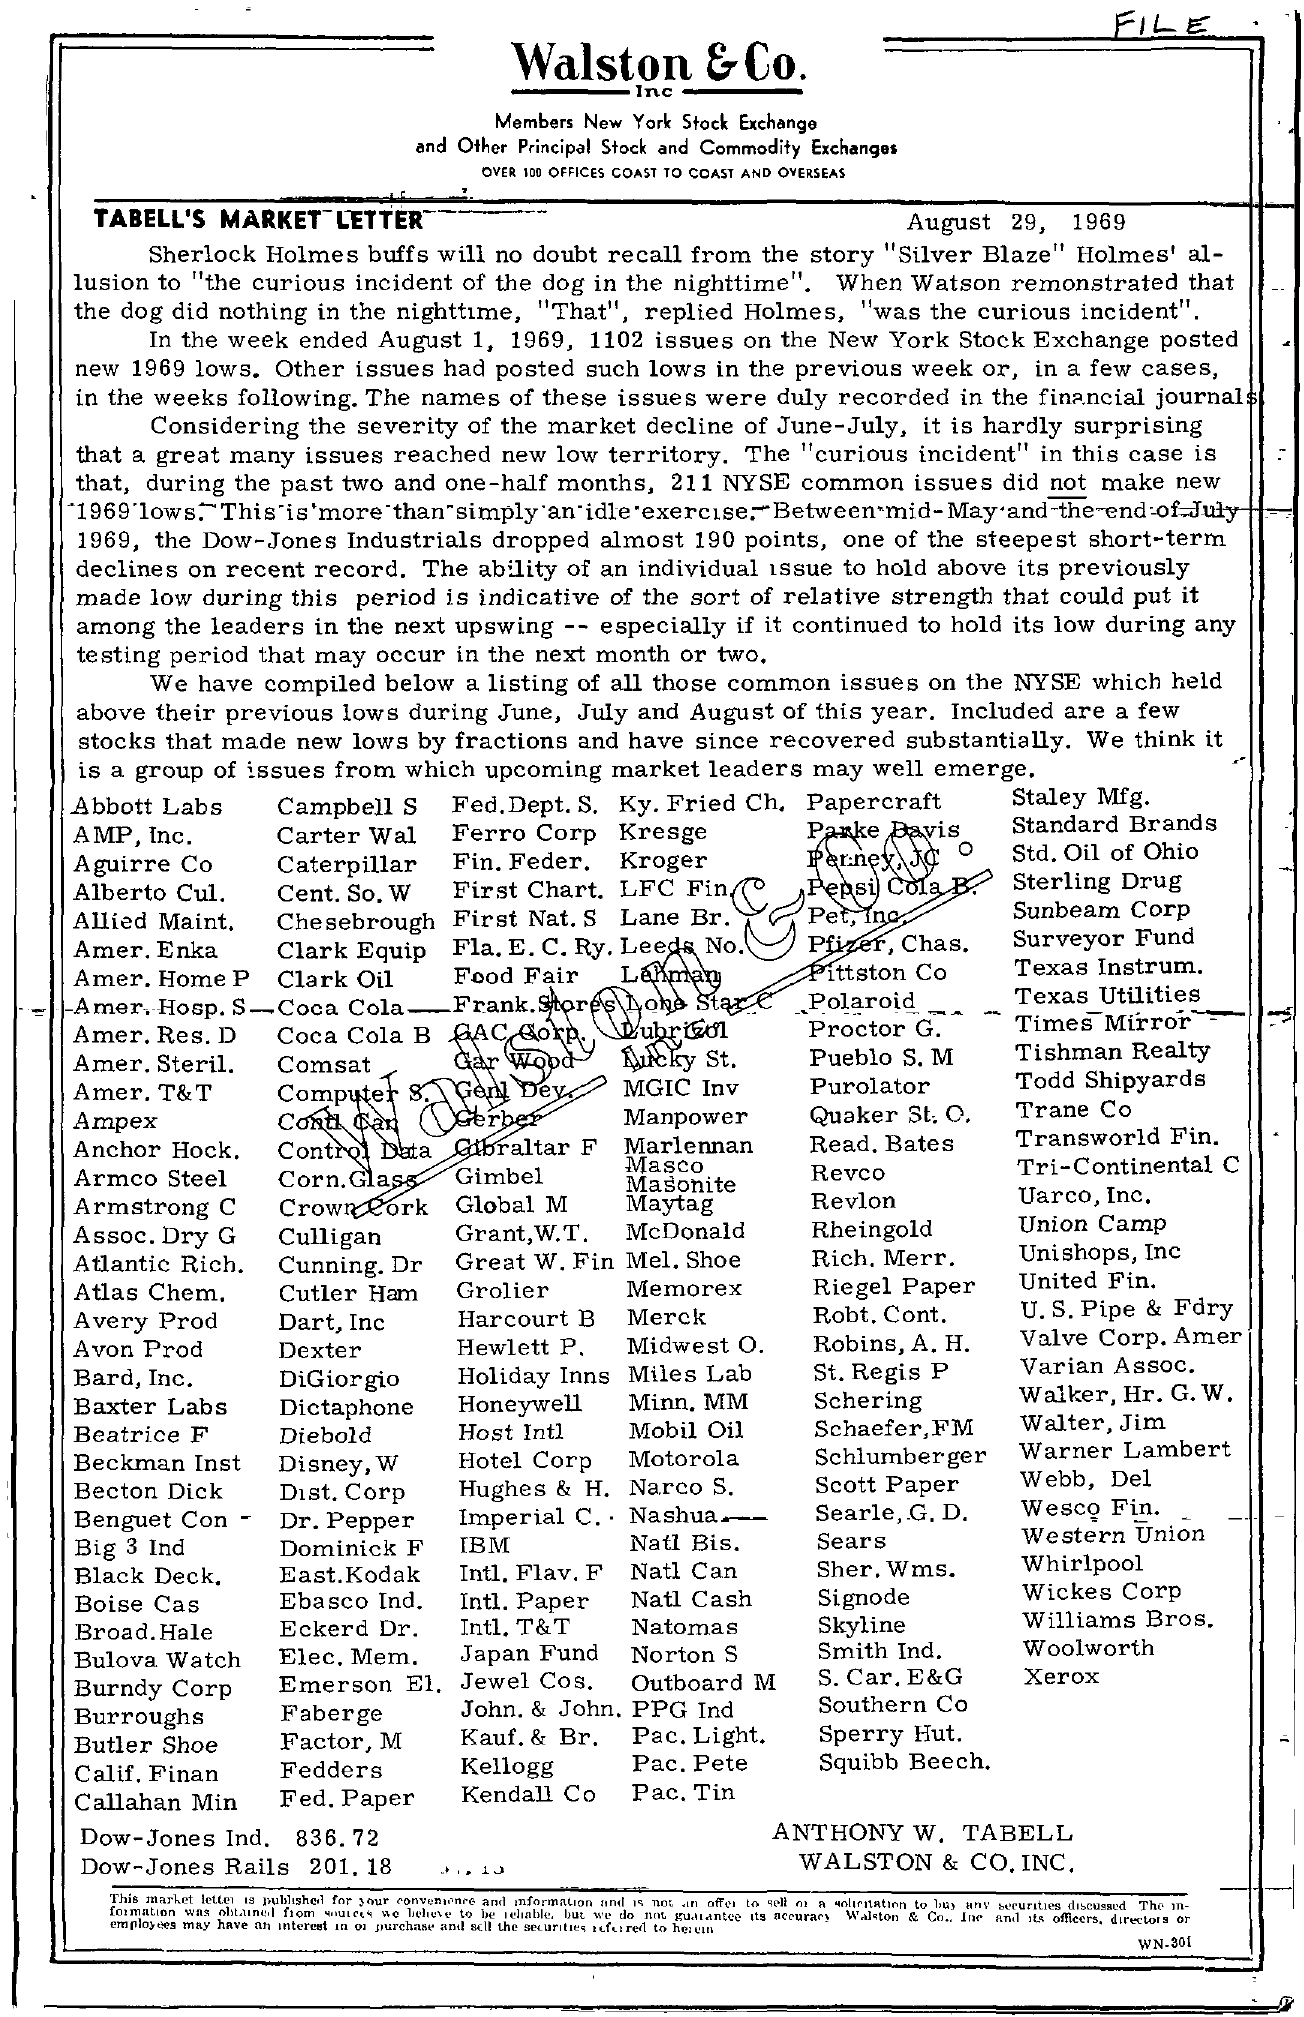 Tabell's Market Letter - August 29, 1969